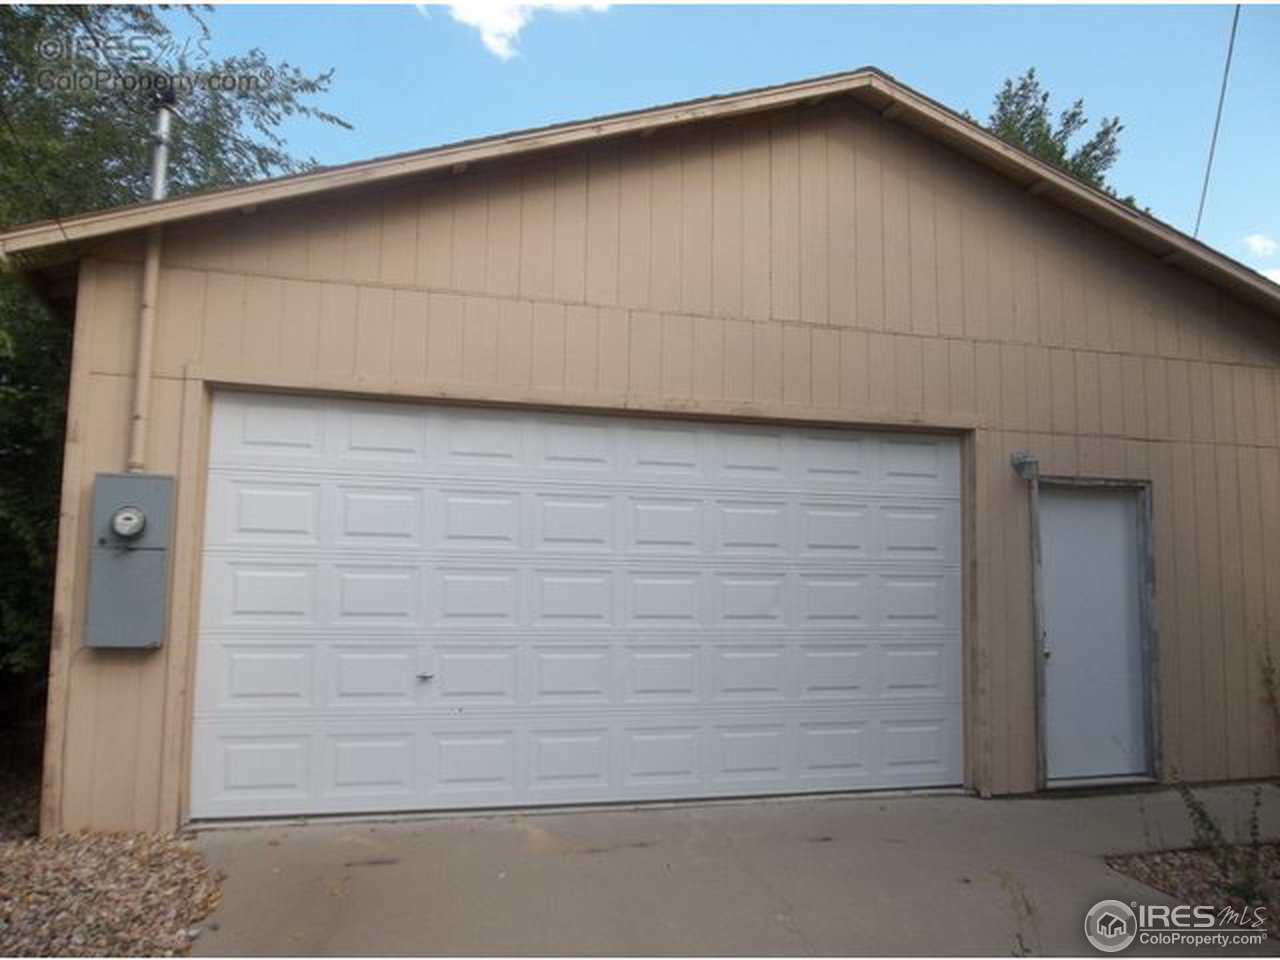 Property Photo For 611 15th St, Greeley, CO 80631, MLS # 852133